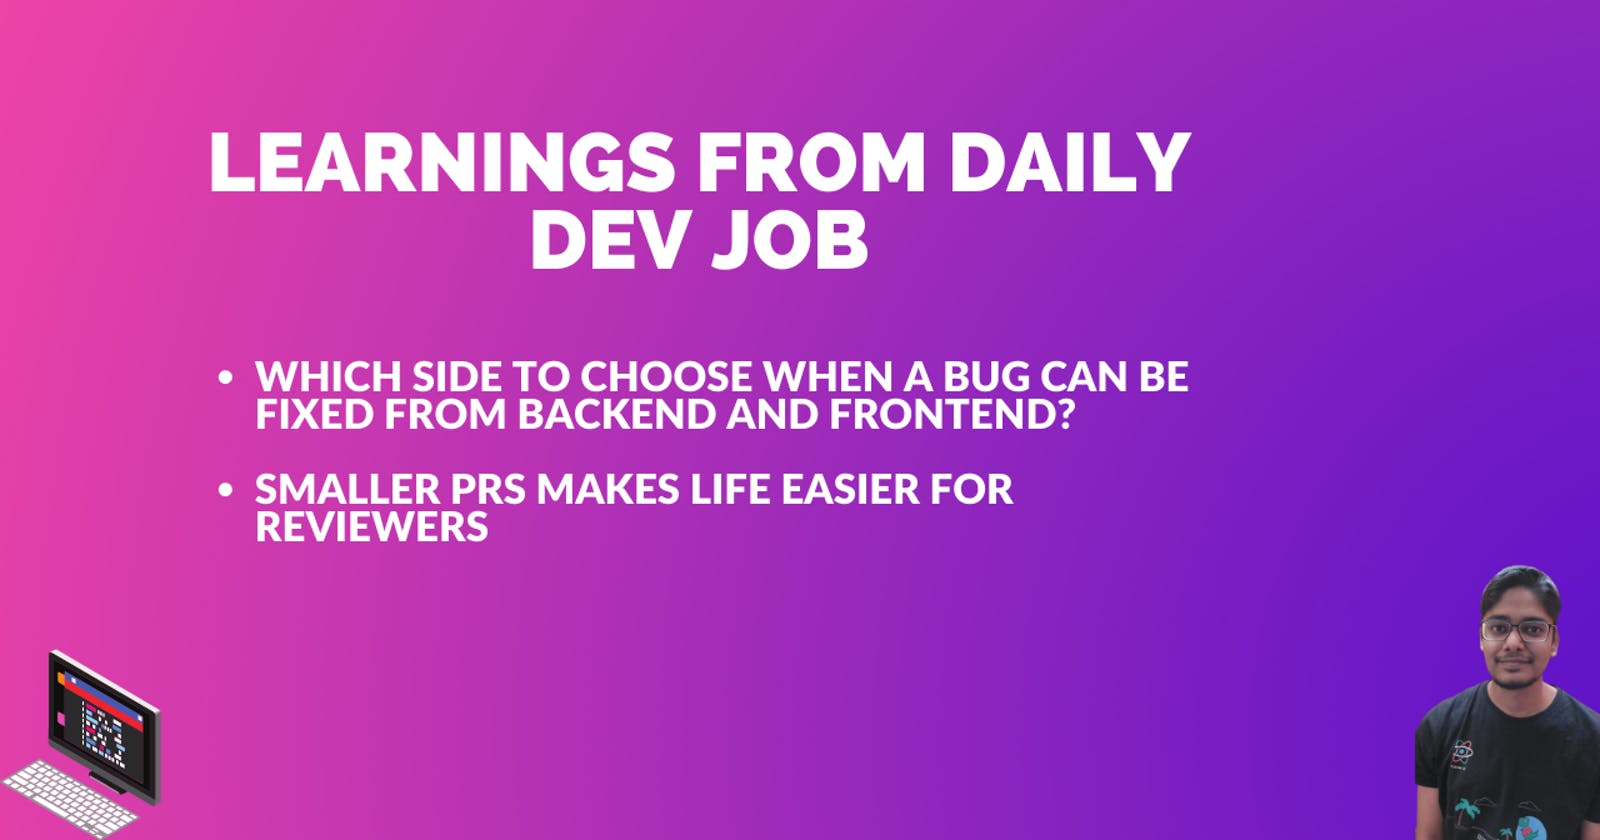 Learnings from daily dev job - Part 1